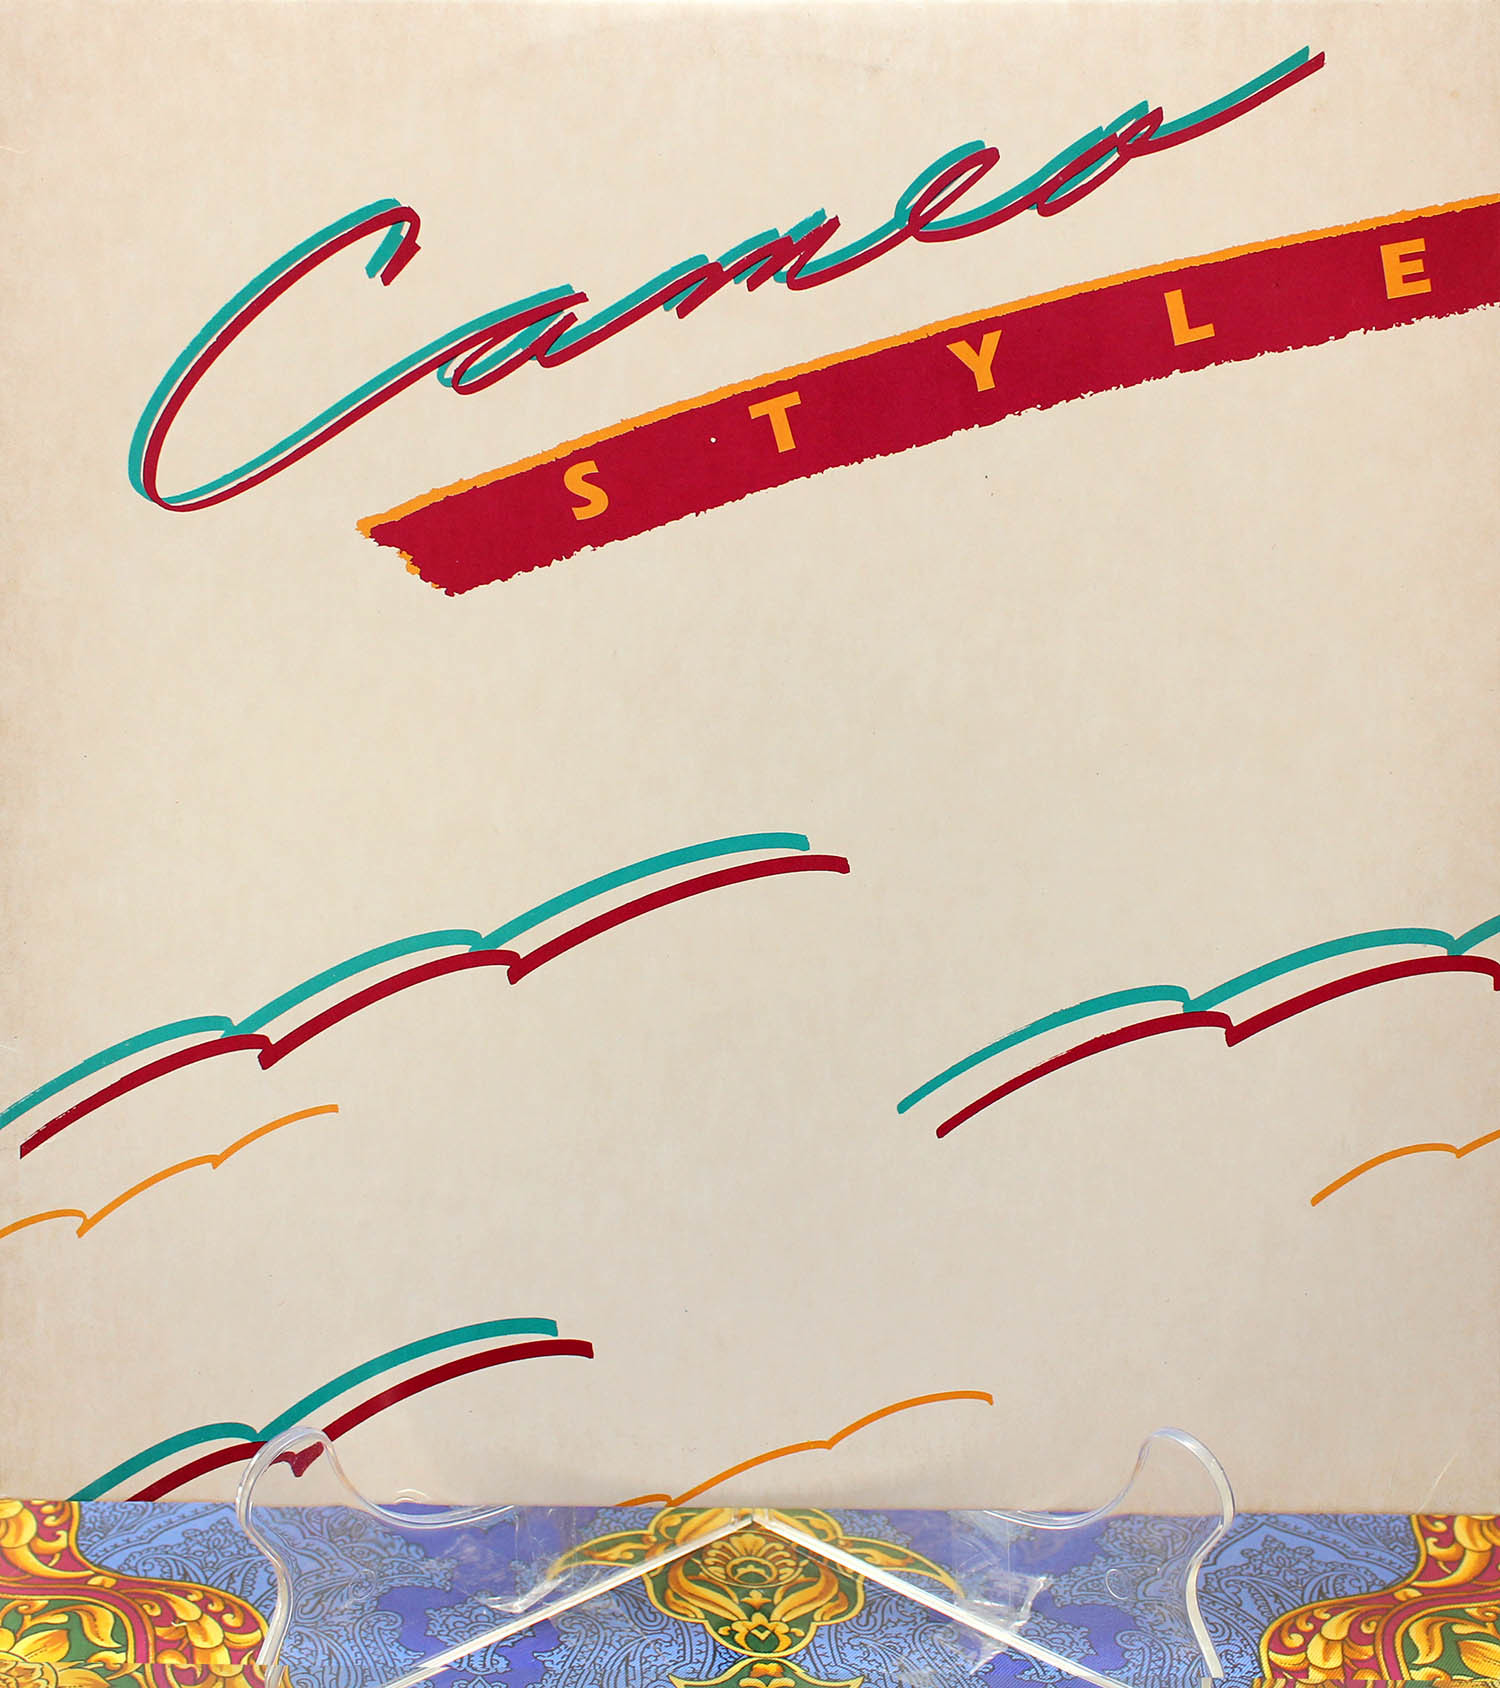 cameo style 01